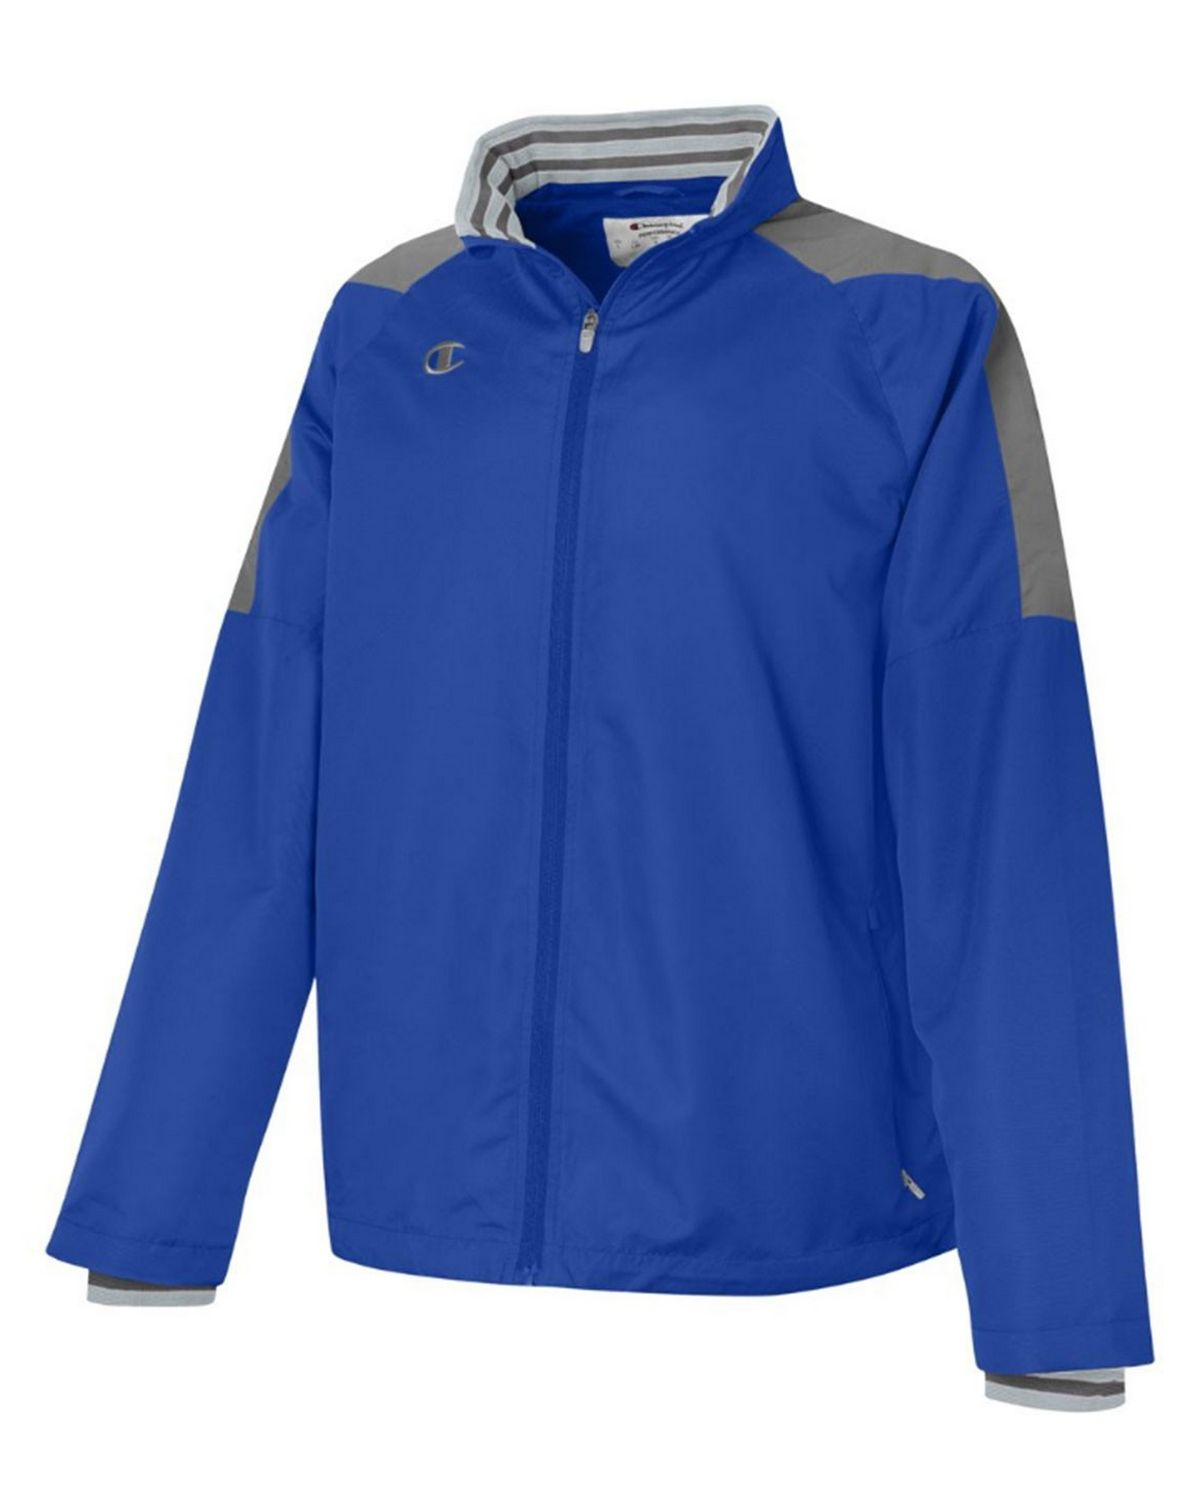 Champion V070 Mens Full Zip Jacket - Athletic Royal/Dark Platinum Gray - S V070